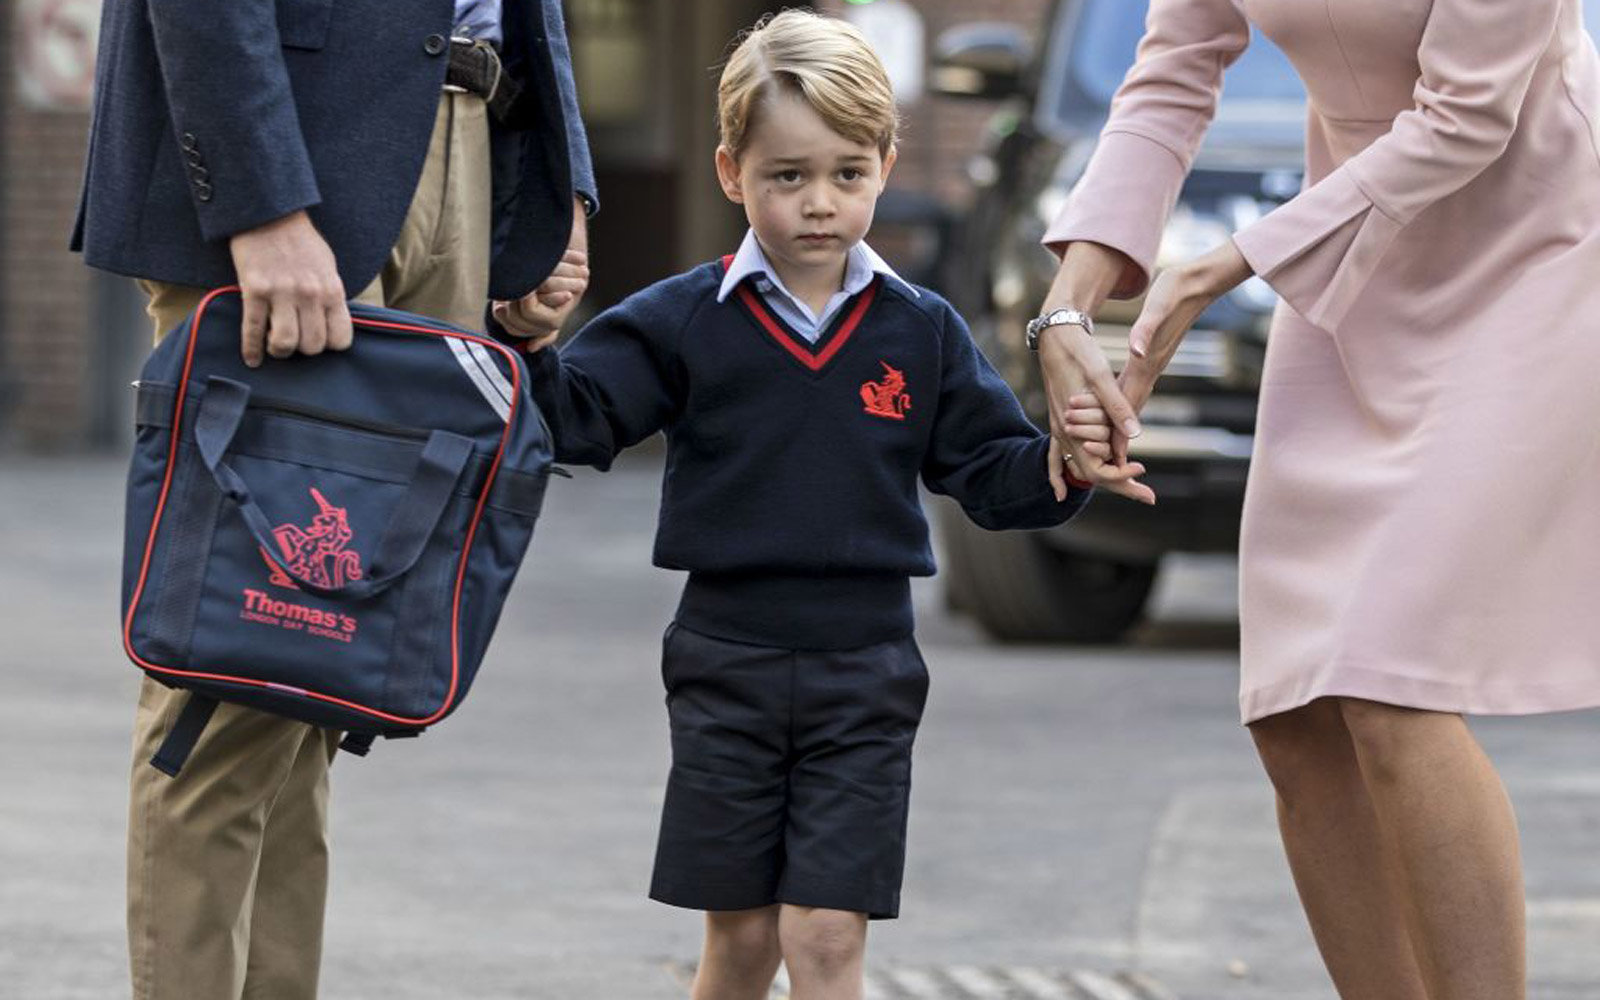 Prince George on his first day of school at Thomas's Battersea